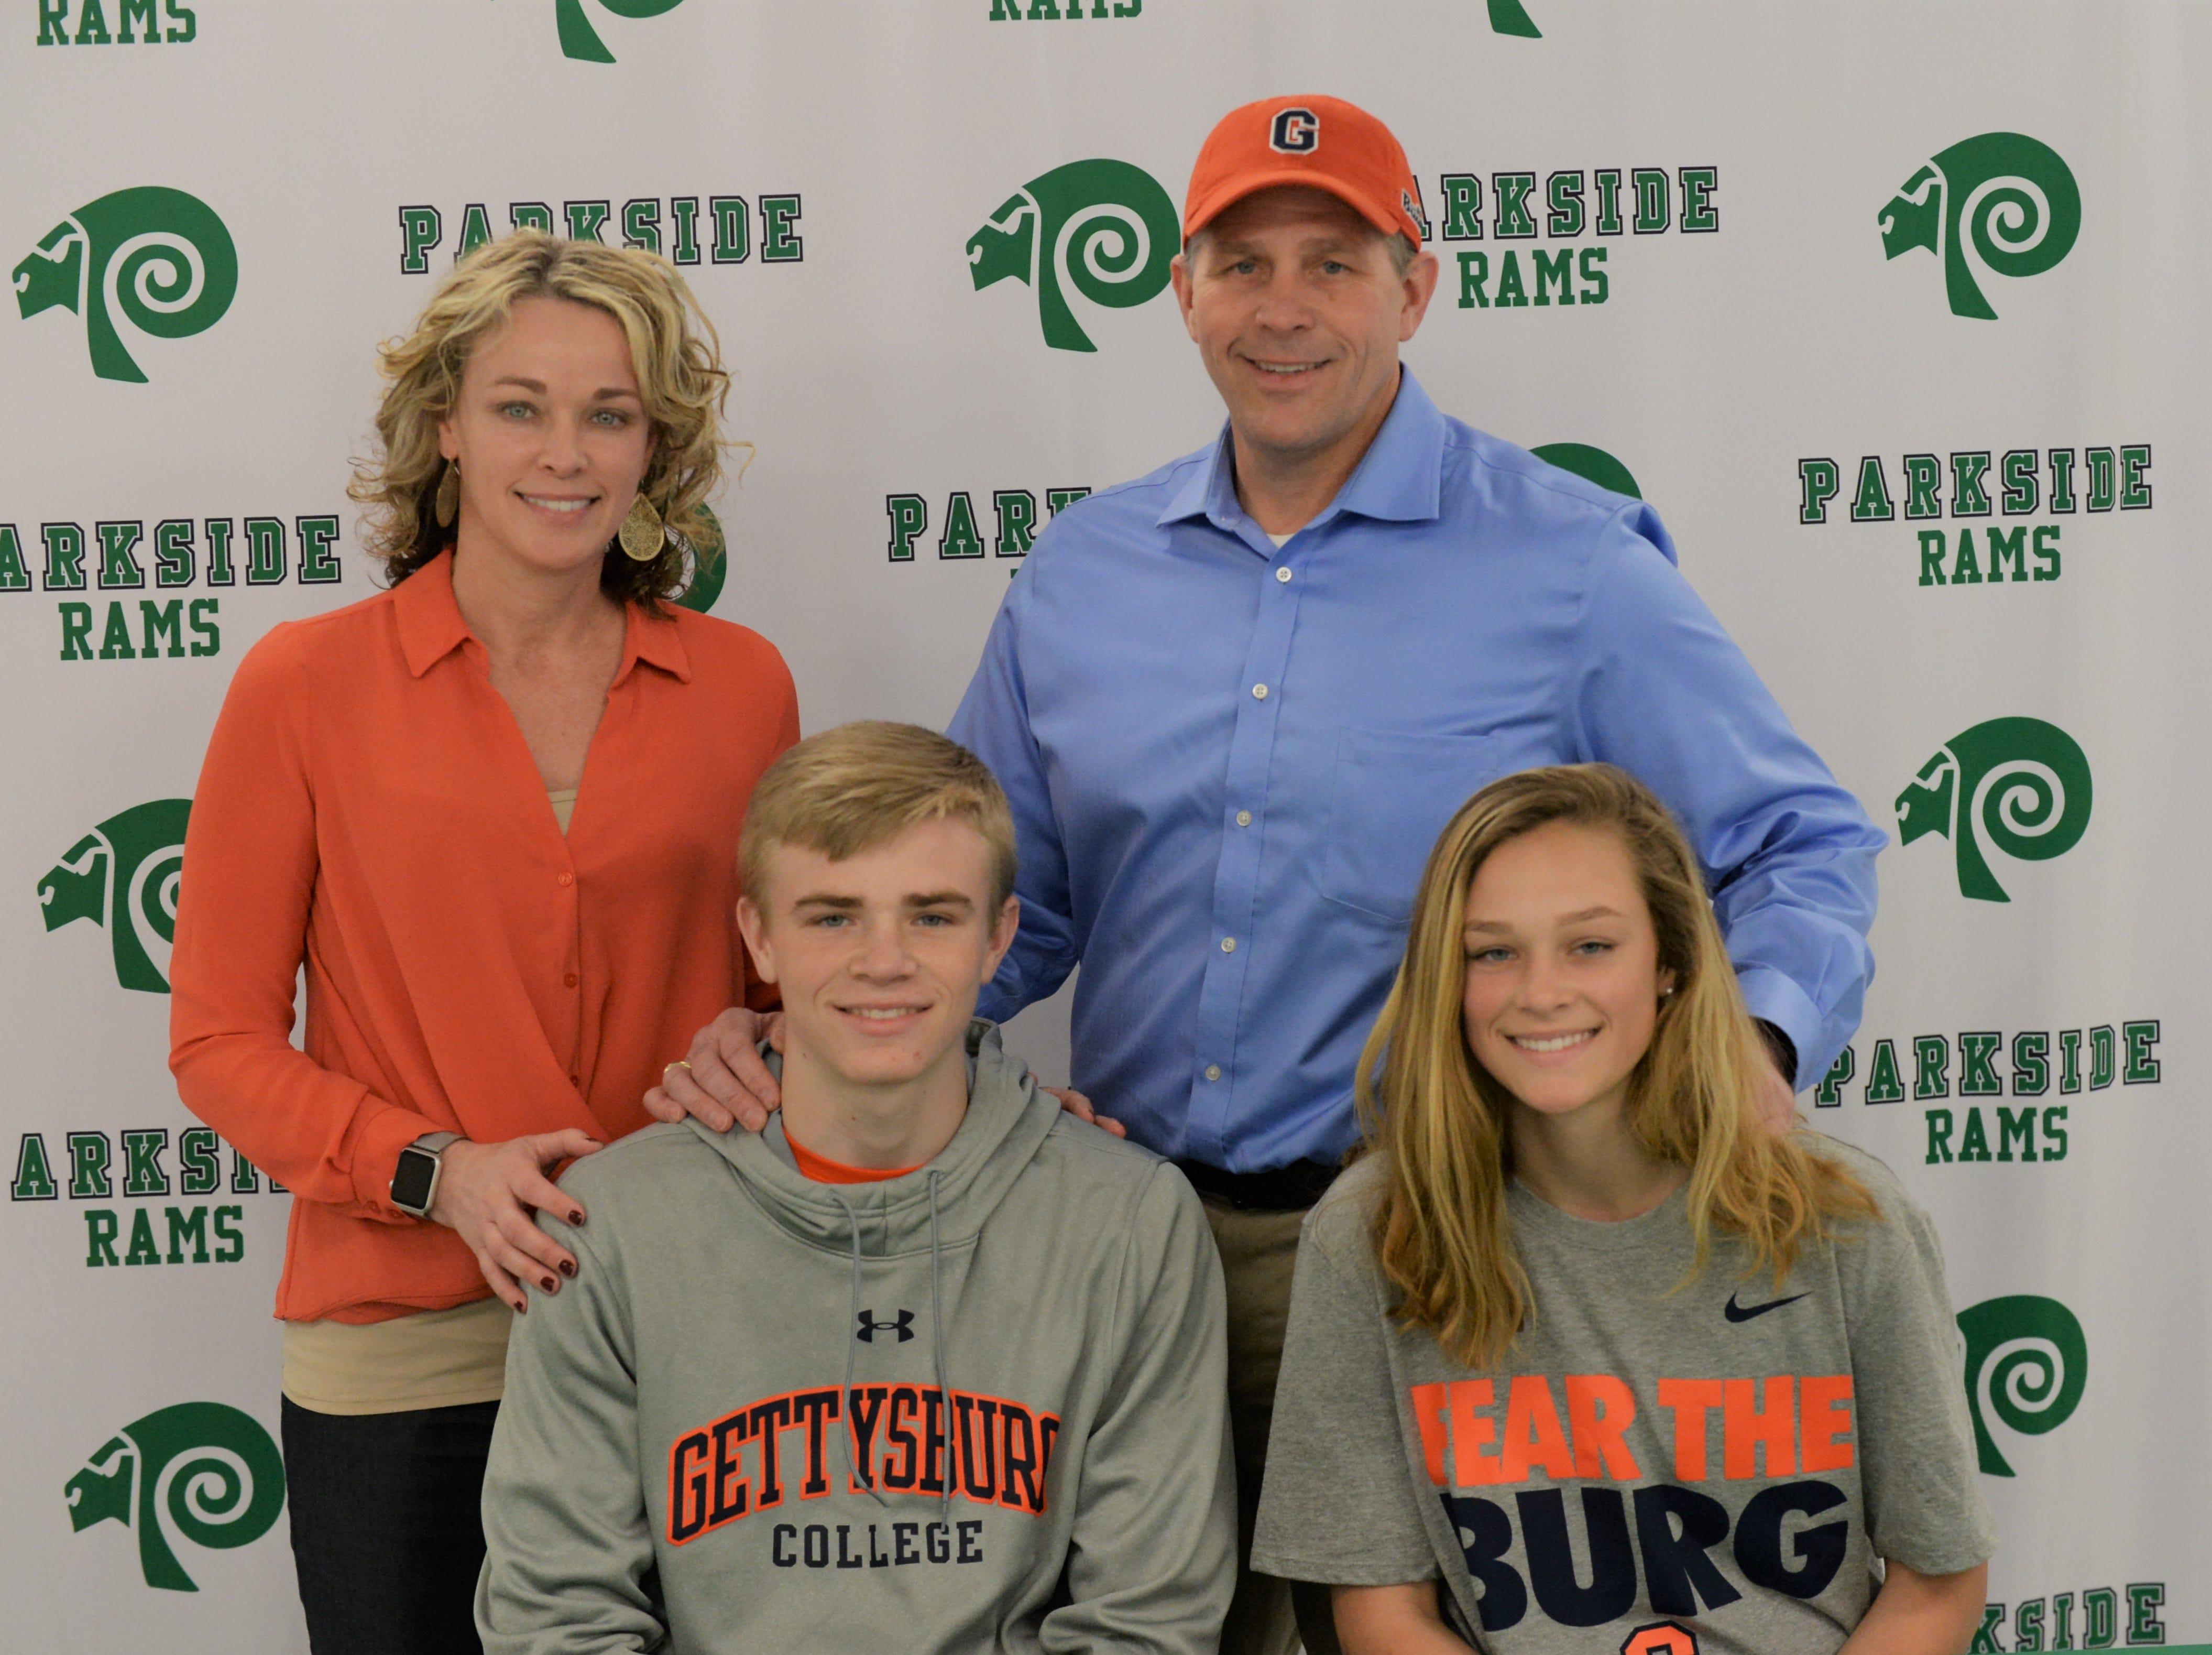 Parkside wrestler Michael Daugherty announces his intent to wrestle at Gettysburg College on Friday, March 22, 2019.